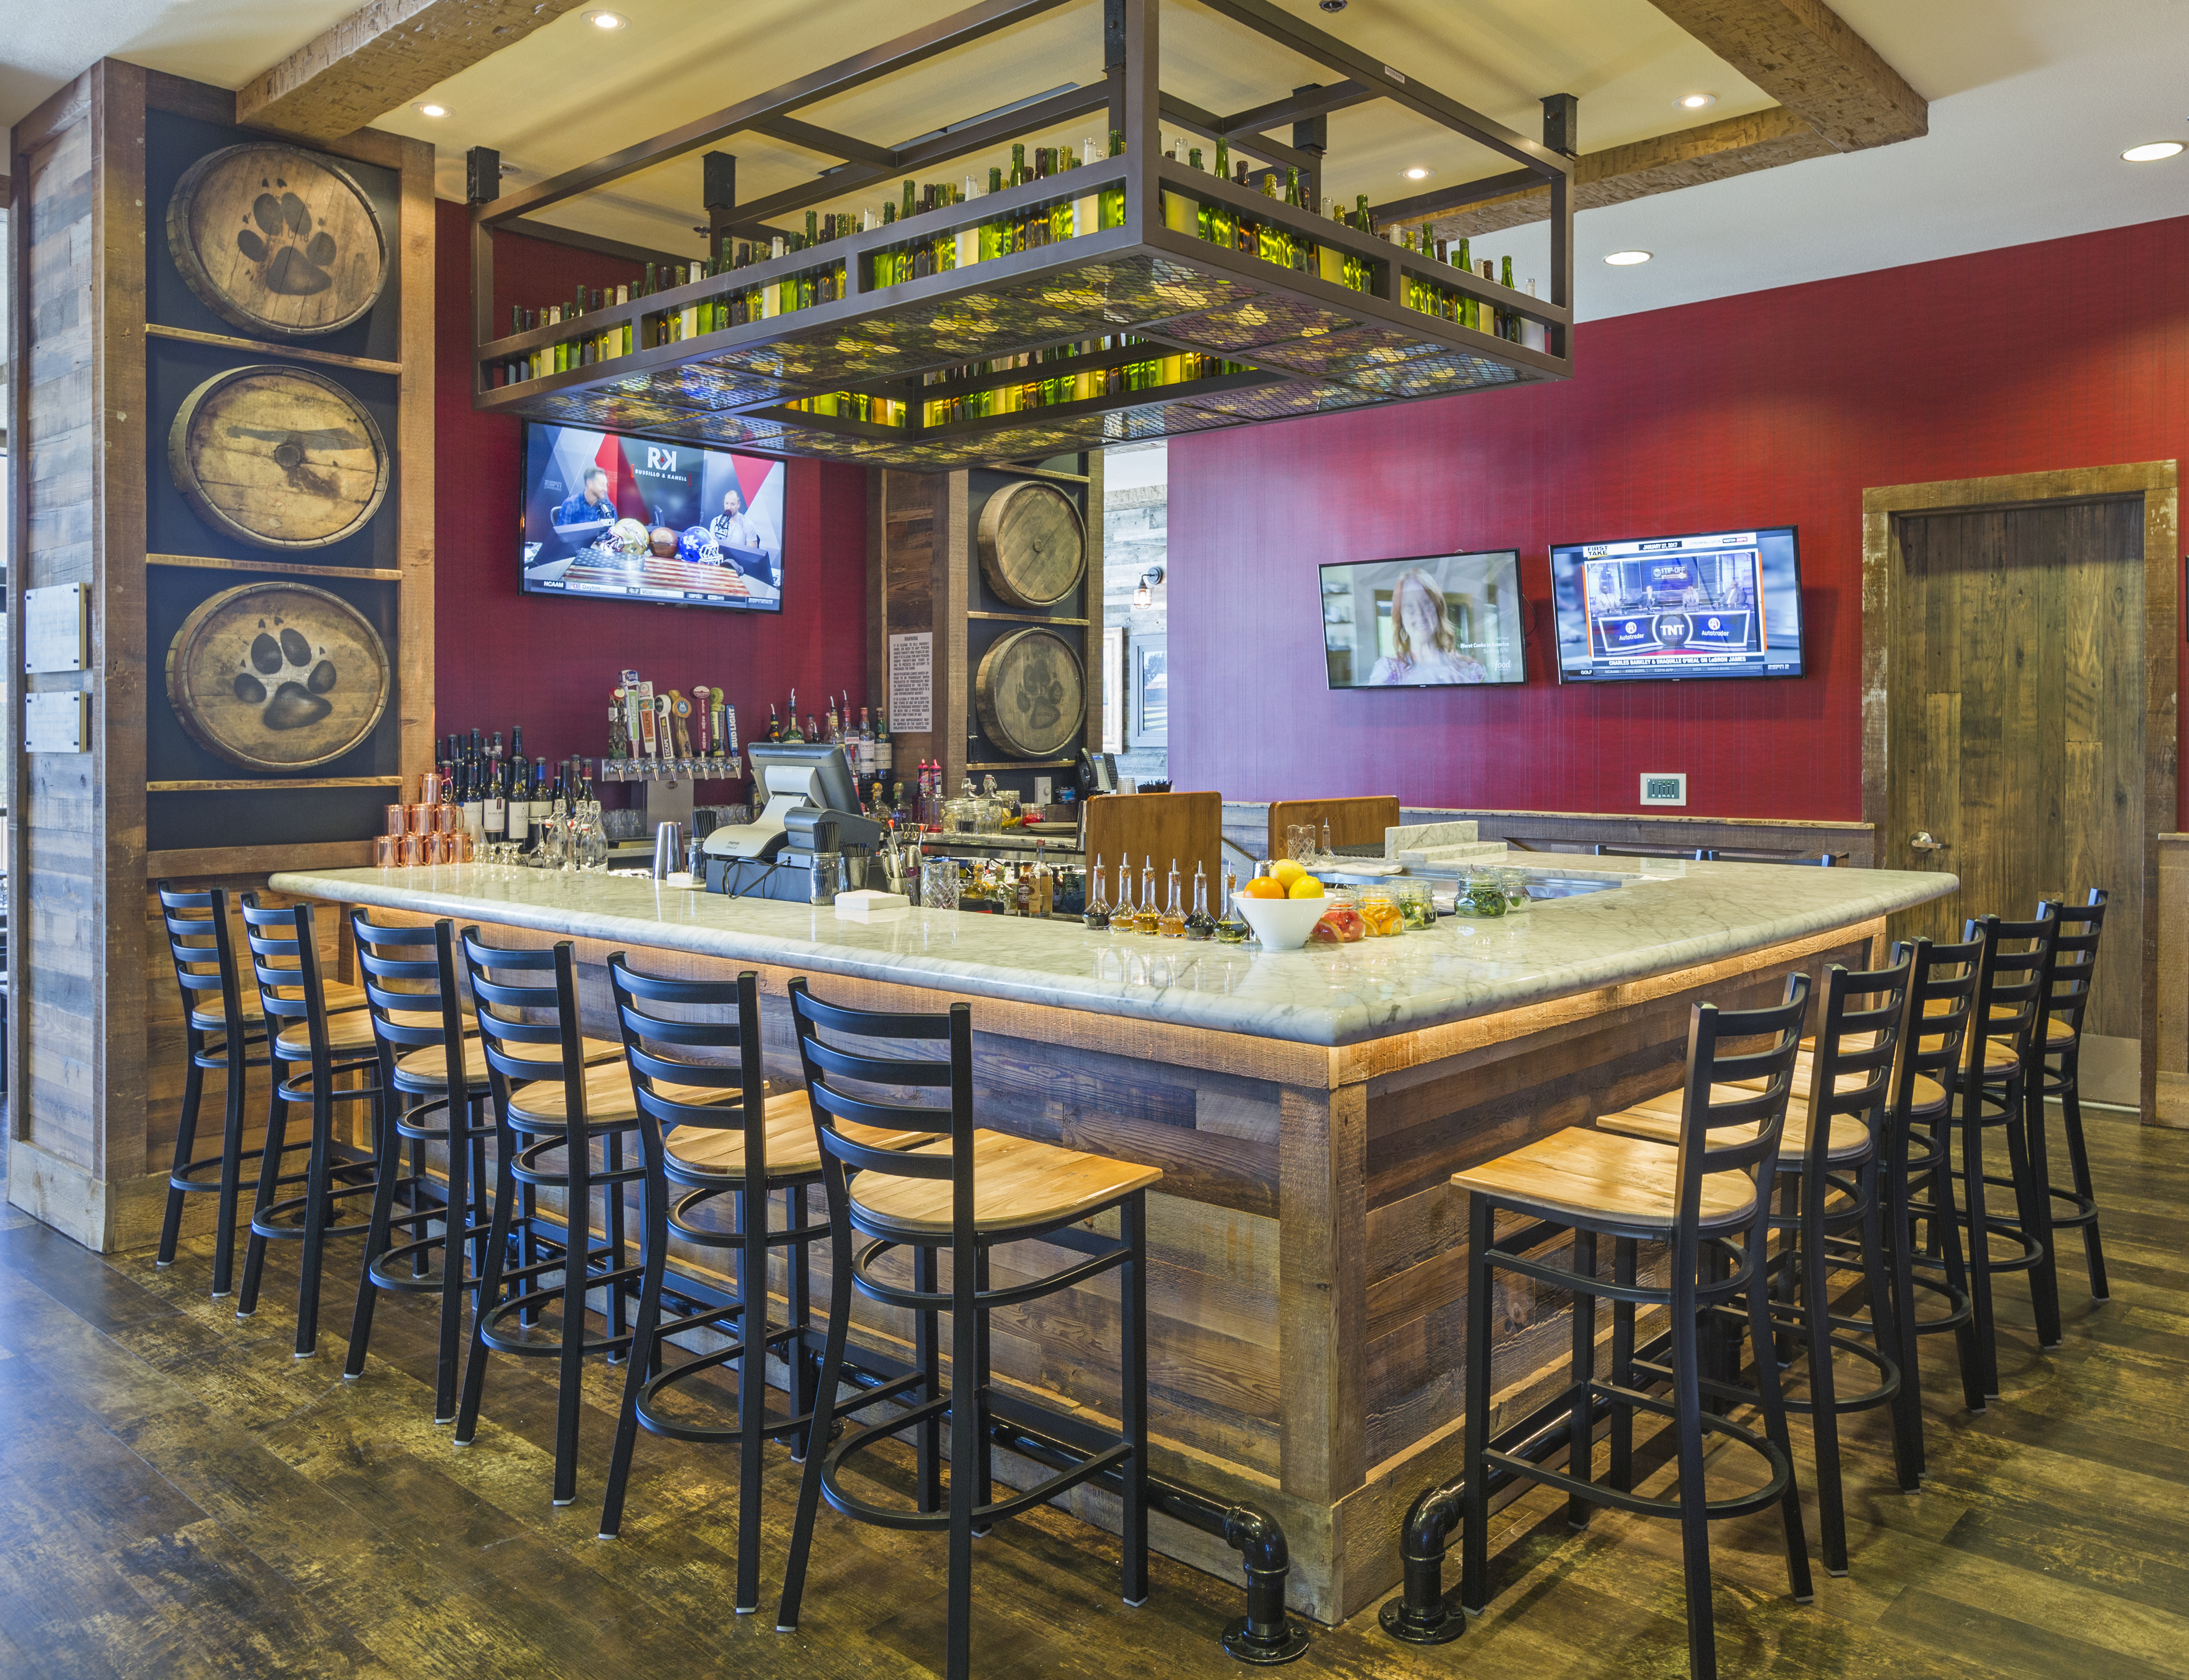 http://mcbridedesign.com/news/the-mcbride-company-designs-new-restaurant-entertainment-concepts-at-great-wolf-lodge-colorado-springs